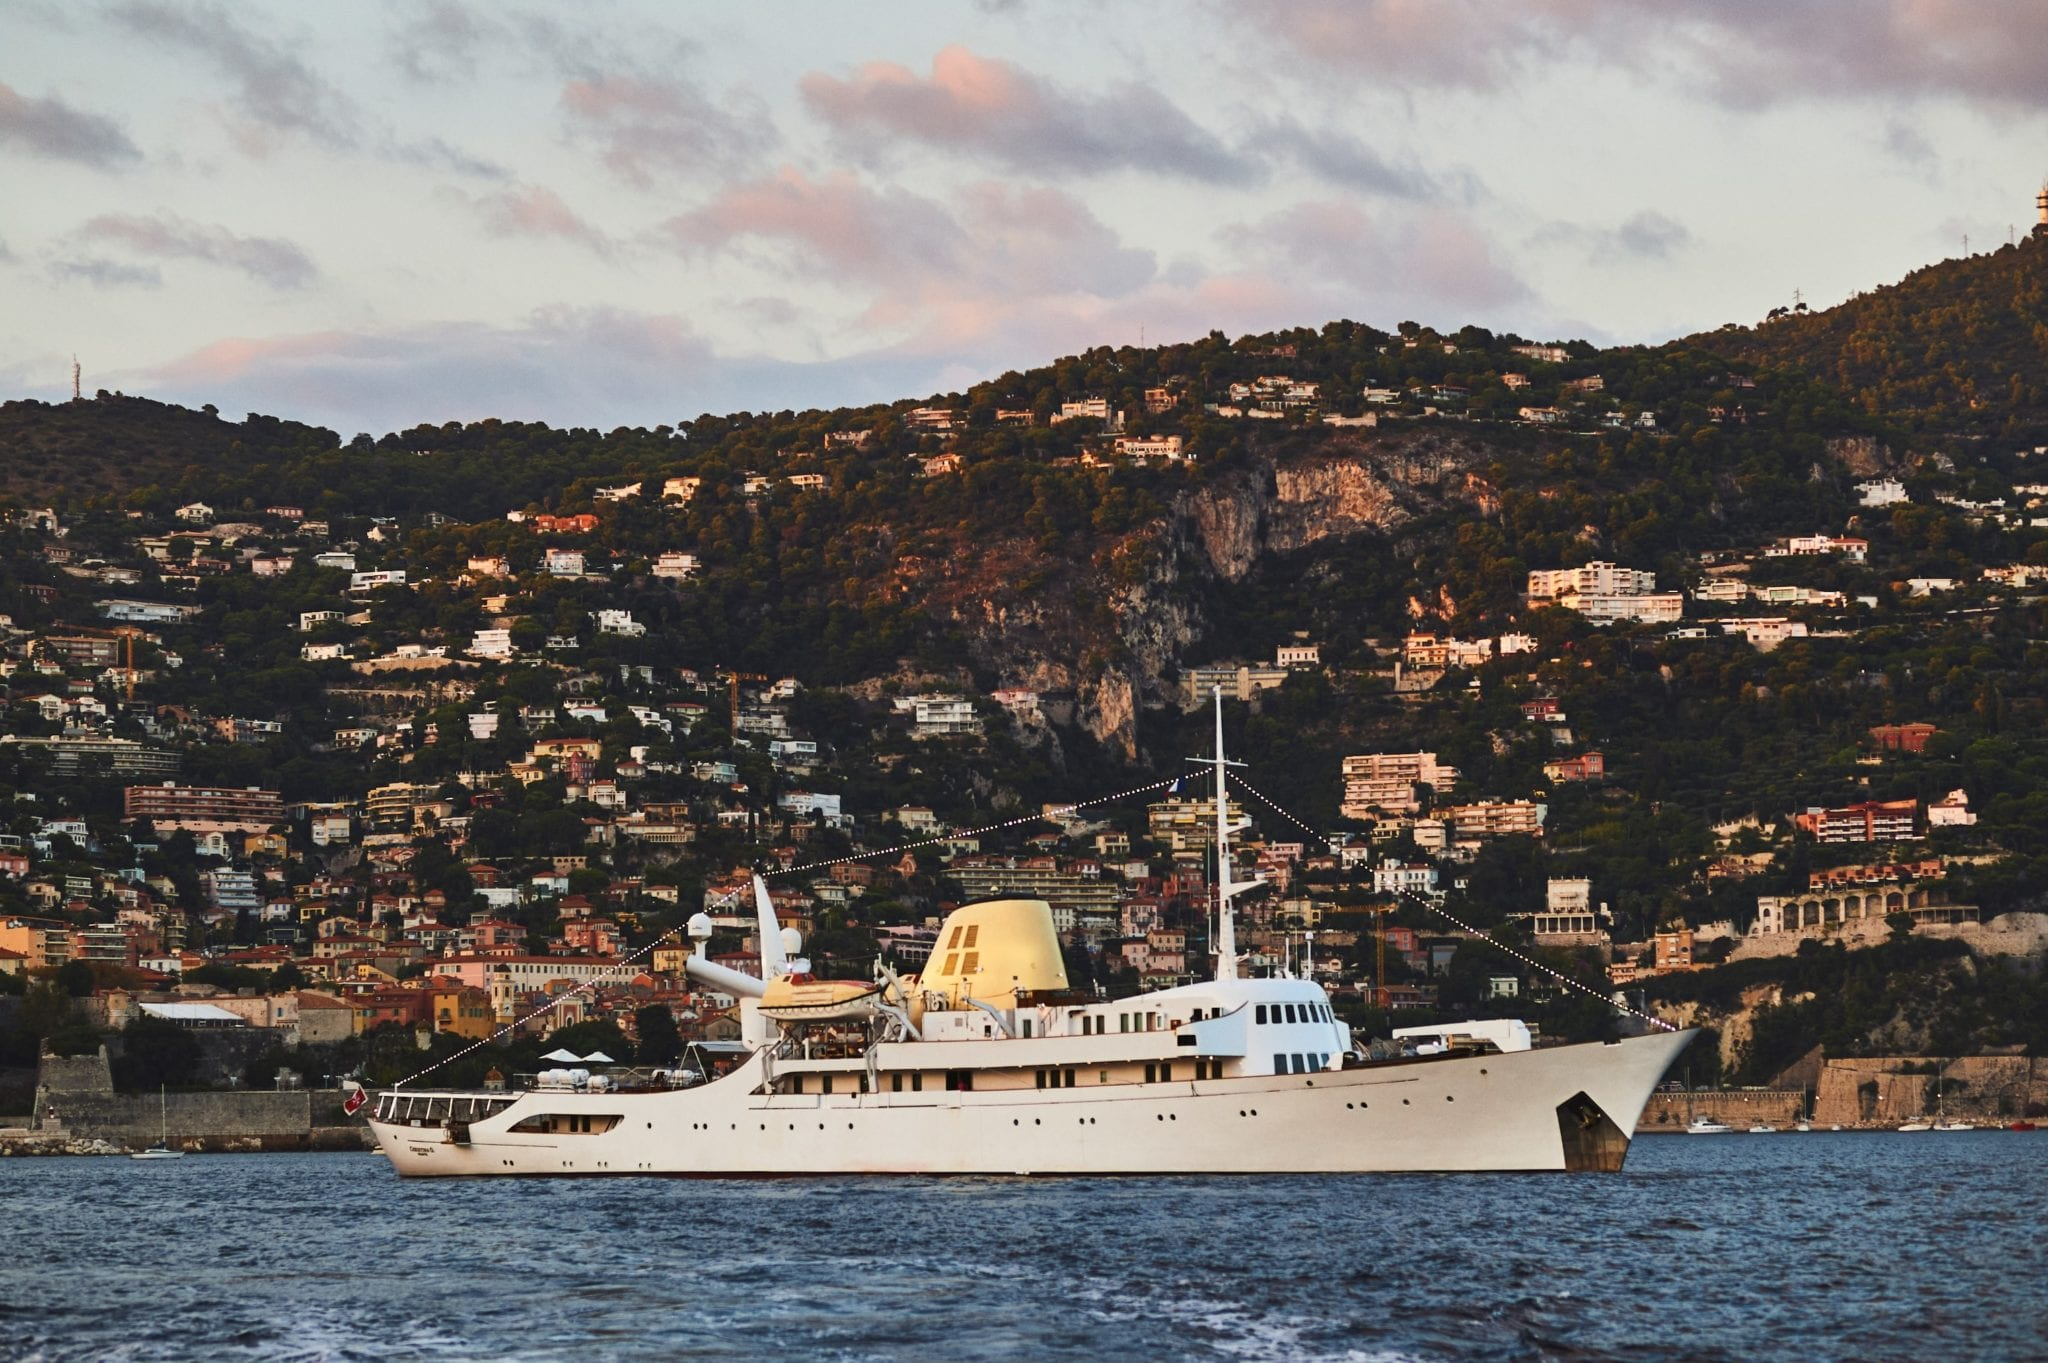 CHRISTINA_O_in Villefranche min -  Valef Yachts Chartering - 1140